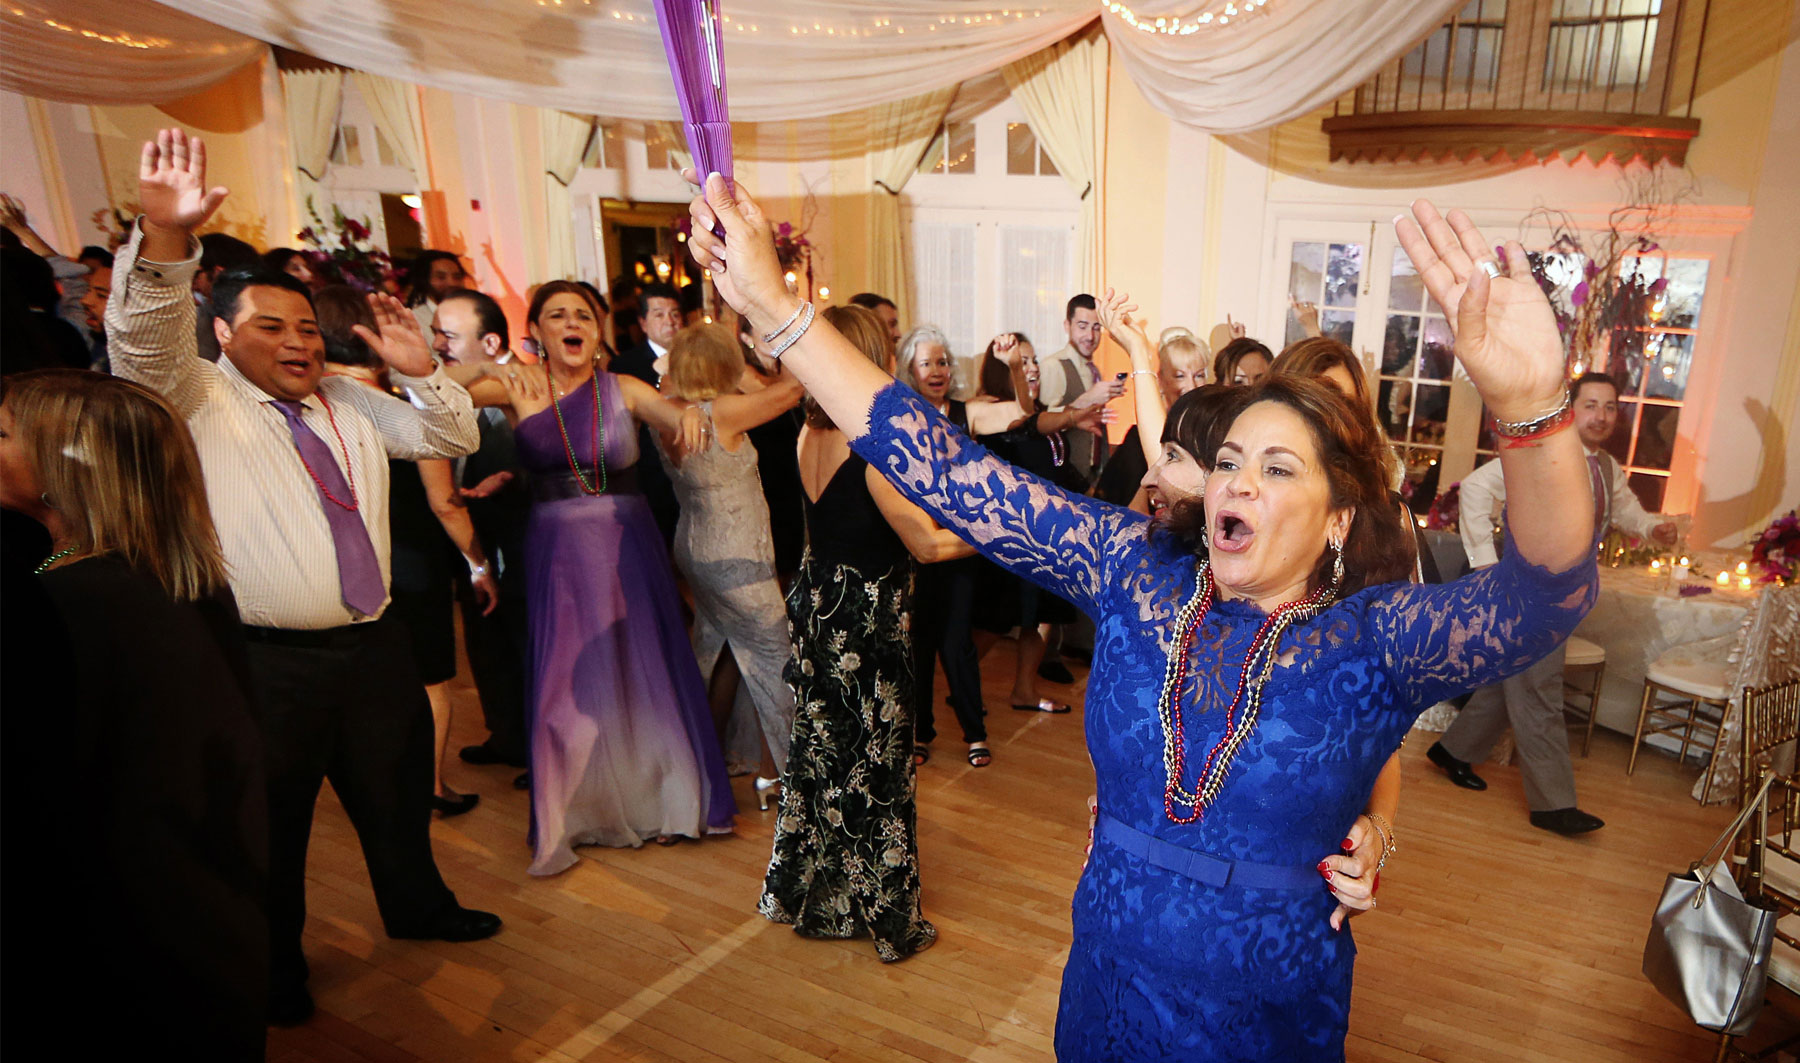 01-Minneapolis-Minnesota-Wedding-Photography-by-Vick-Photography-Crazy-Cam-Reception-Lafayette-Country-Club-Dance.jpg